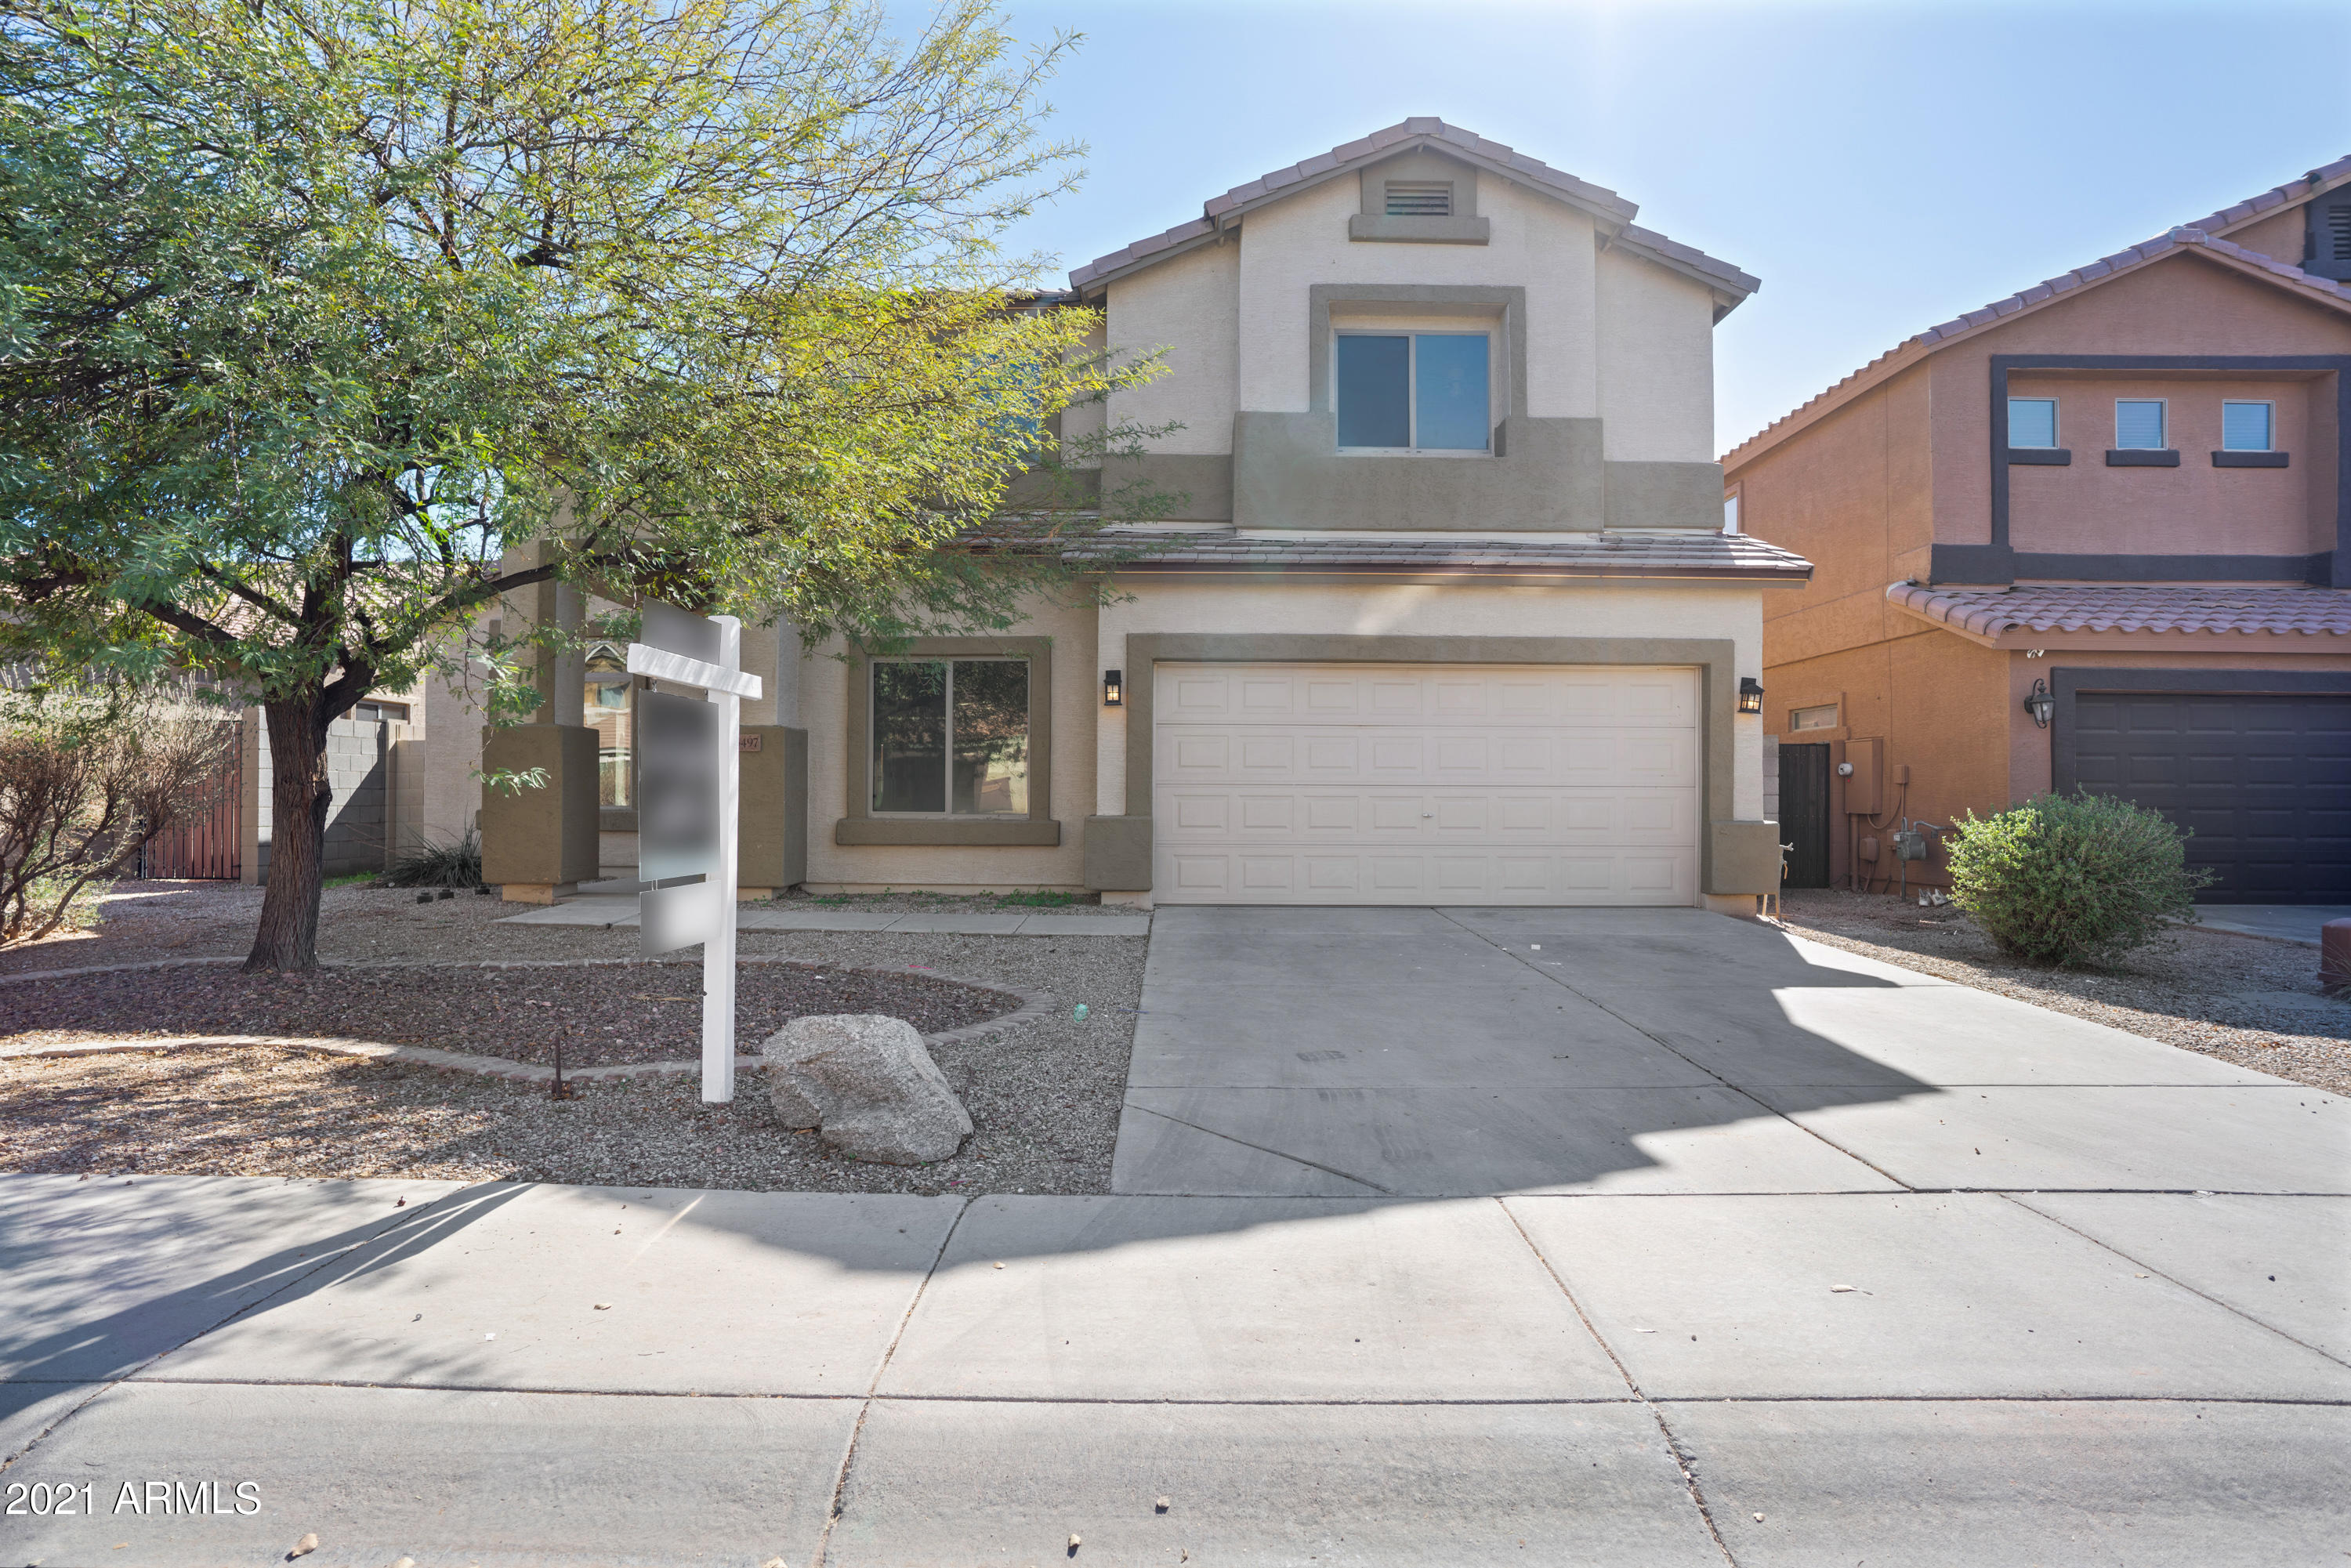 Welcome home to this newly renovated, six bedroom Maricopa home. Inside you'll find new flooring and new paint throughout. You'll also enjoy a new roof, one new AC unit! With new turf in the back, this home is sure to please!